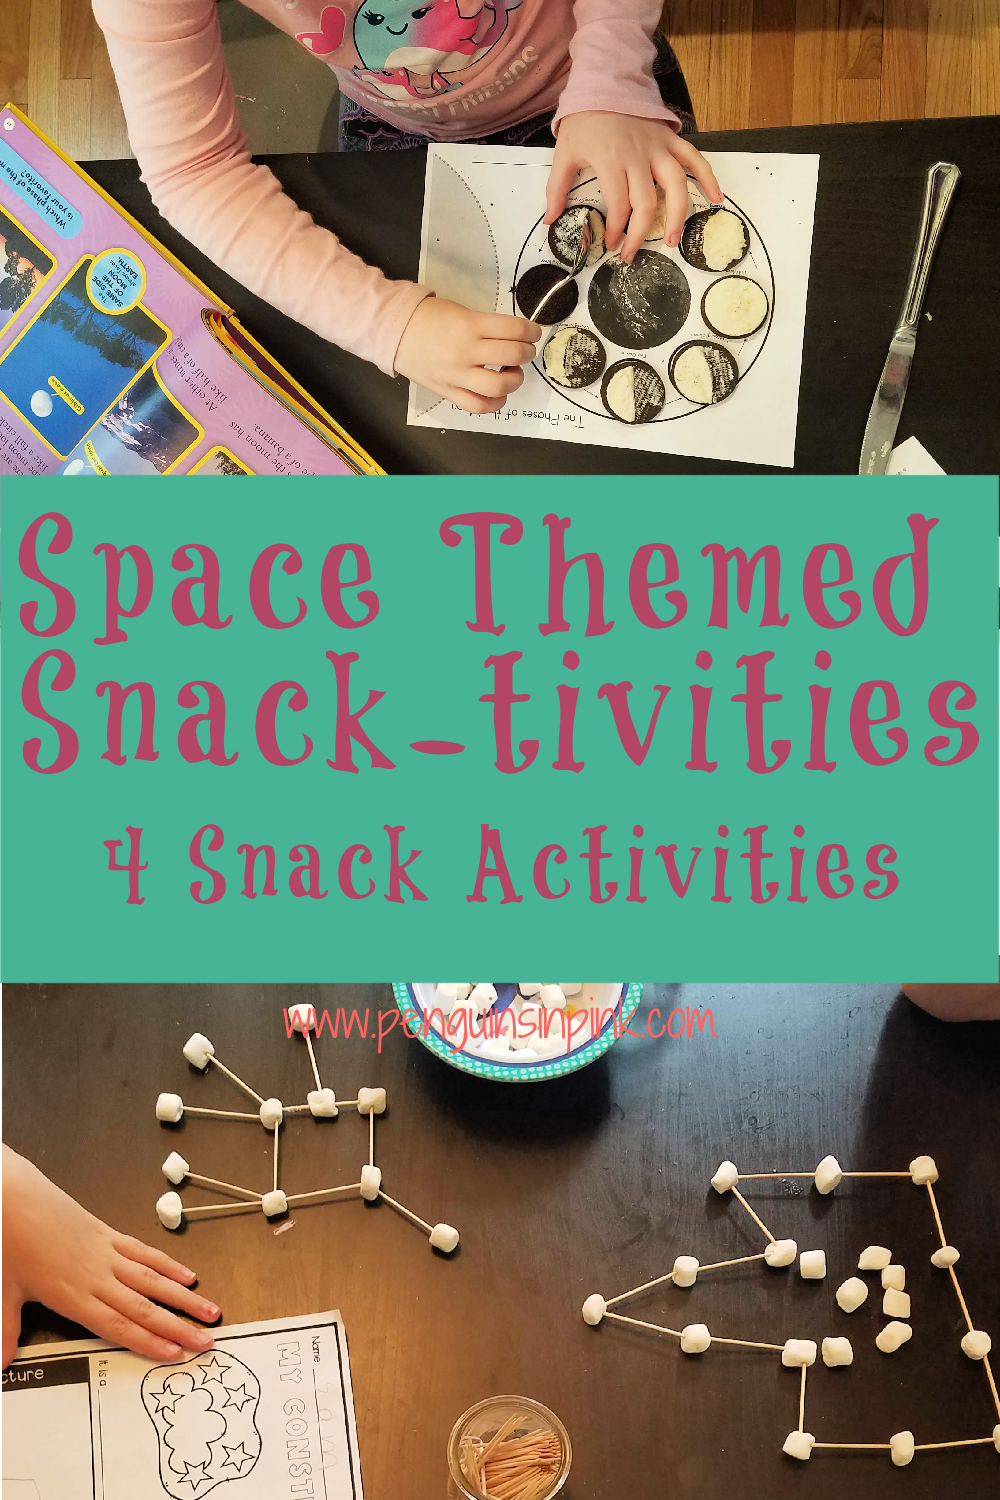 Four, fun and tasty, space themed snack-tivities. Kids will have a blast making planet cookies, marshmallow constellations, rocket kabobs, and the phases of the moon Oreo activities. The best part of all these snack activities? Getting to eat them when you are done!